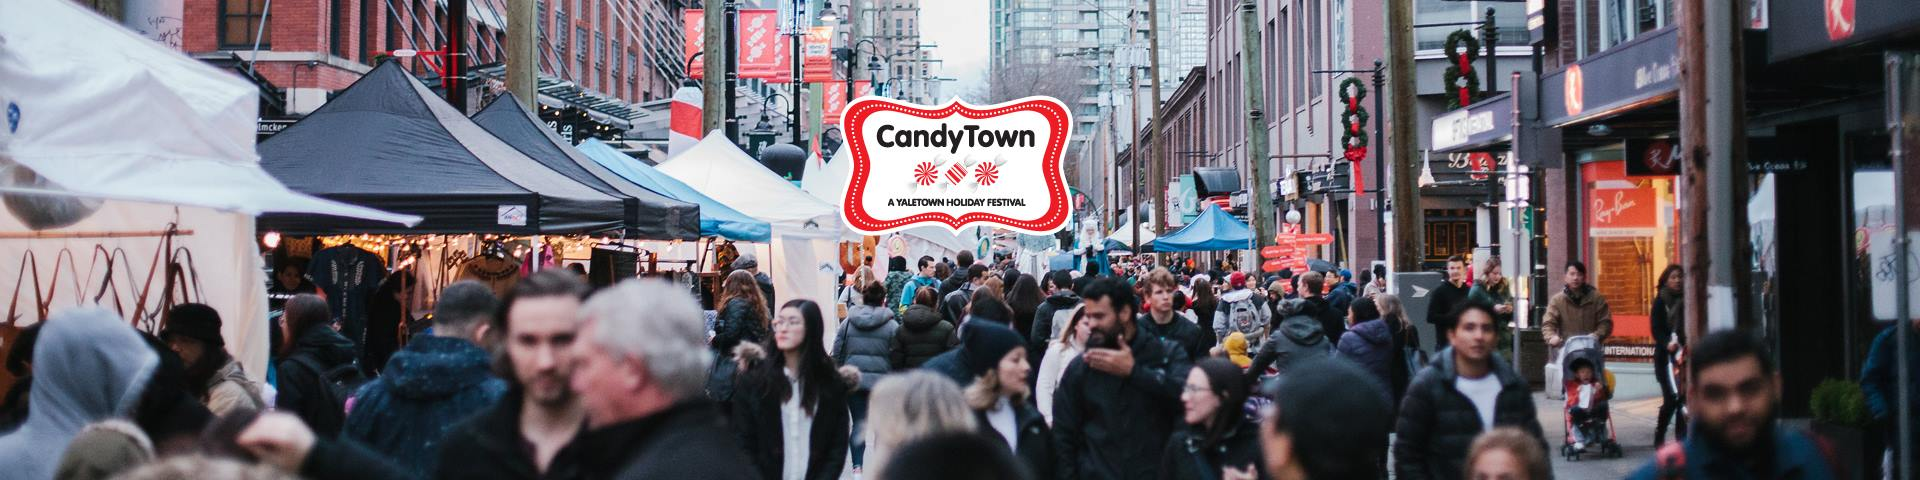 Candytown